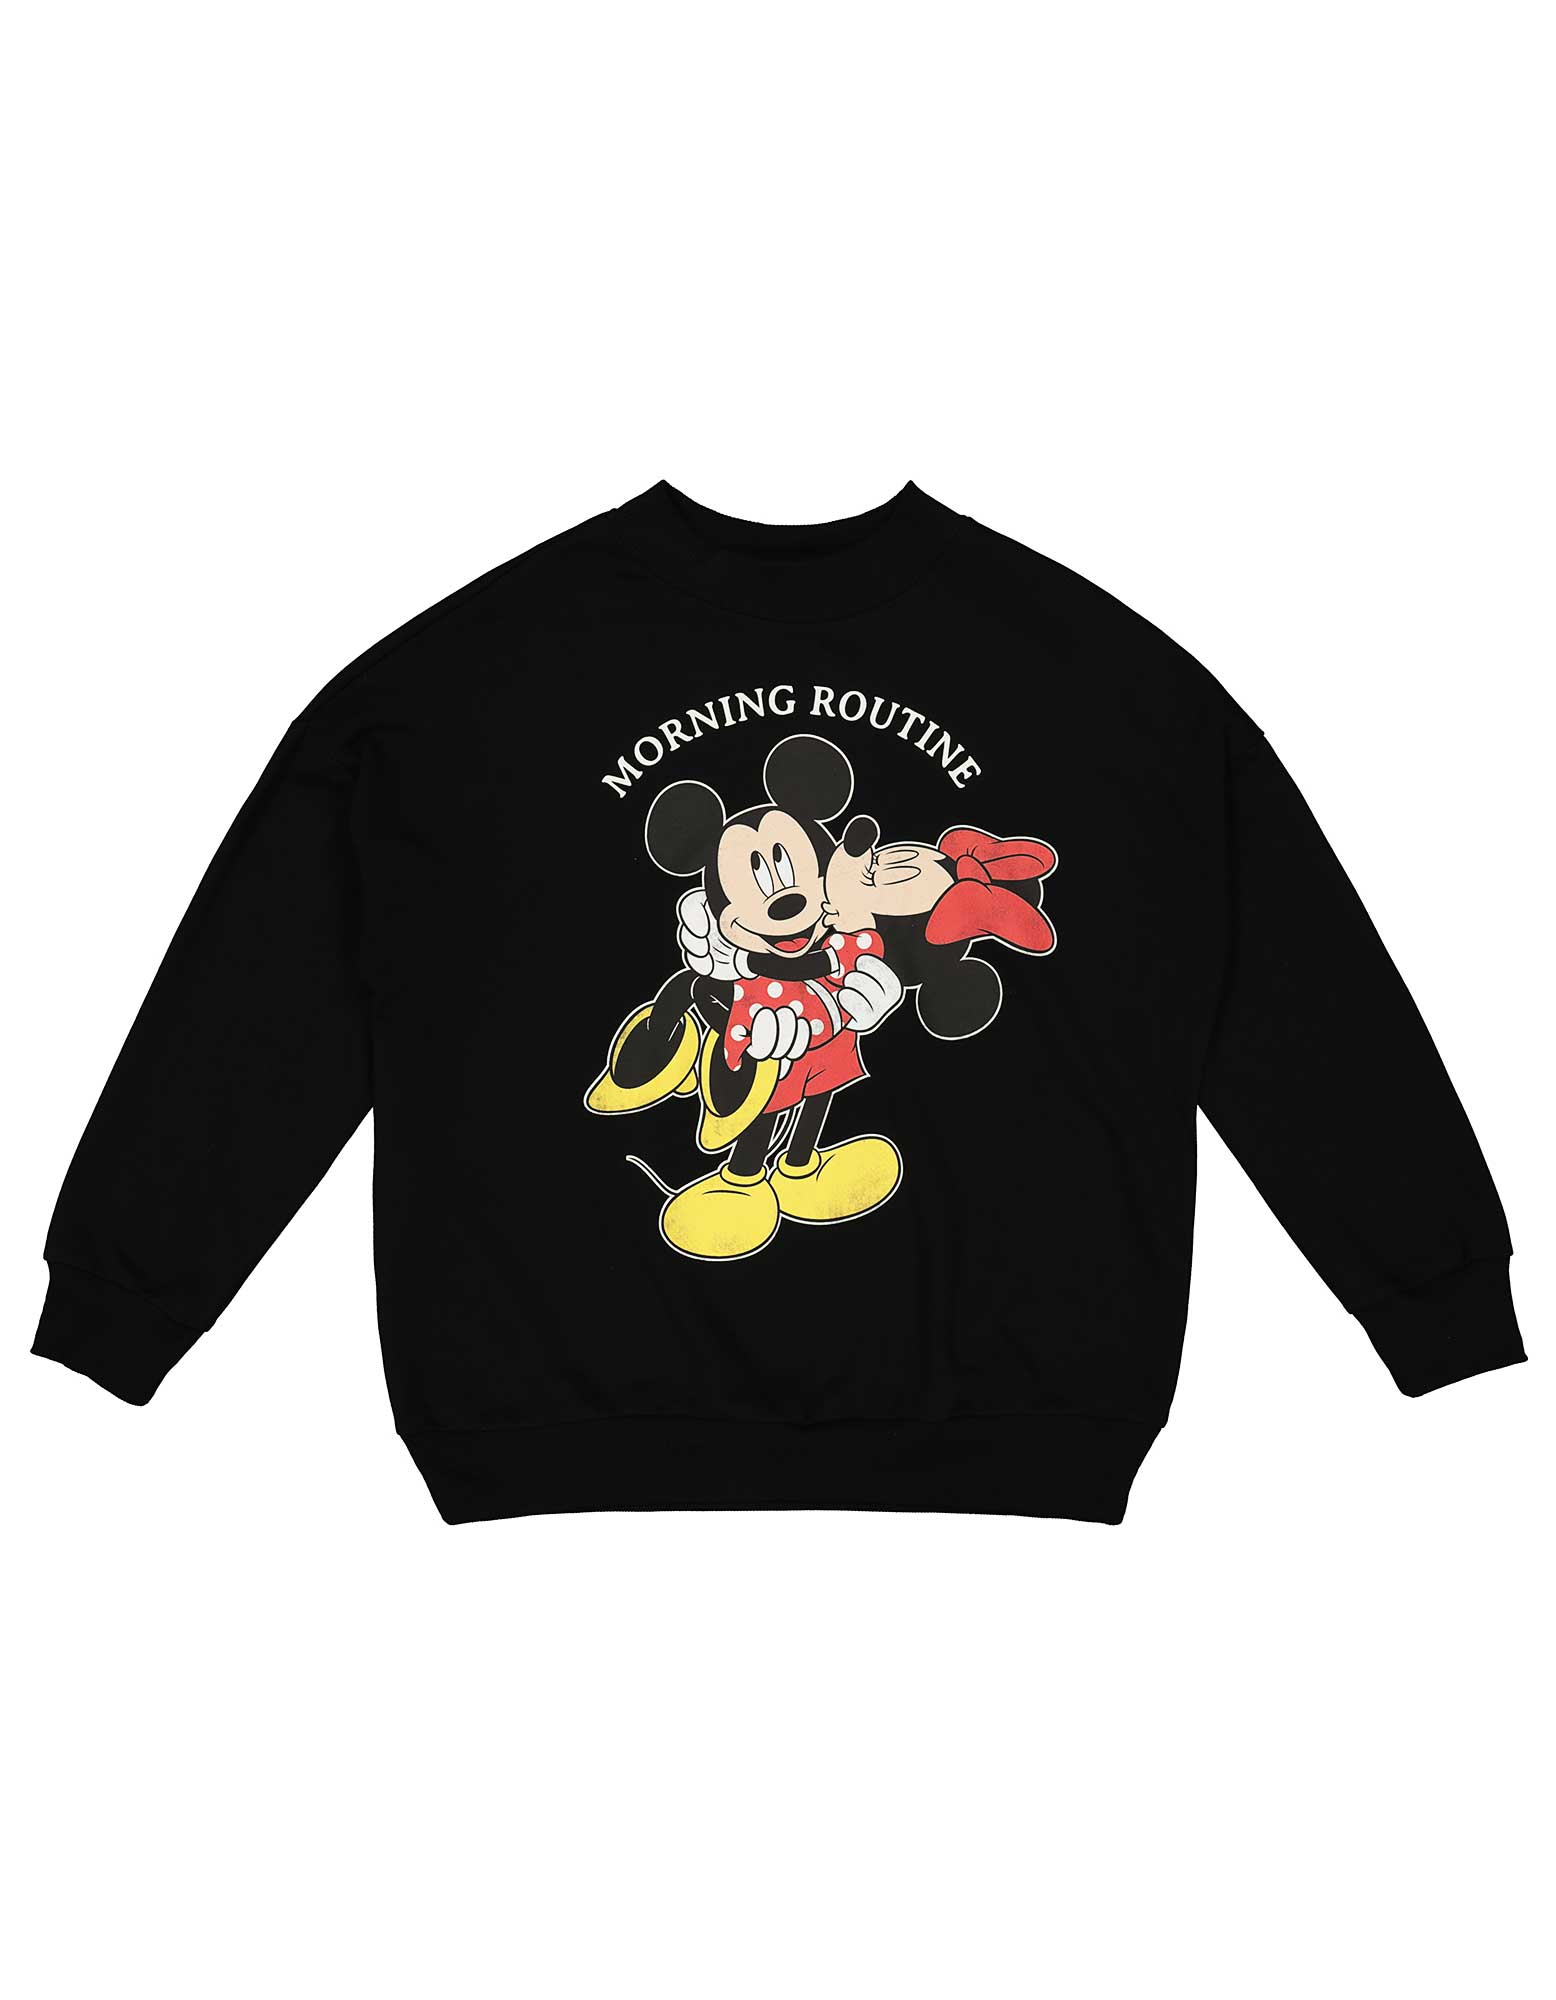 Damen Sweatshirt mit Mickey Mouse Print Takko Fashion